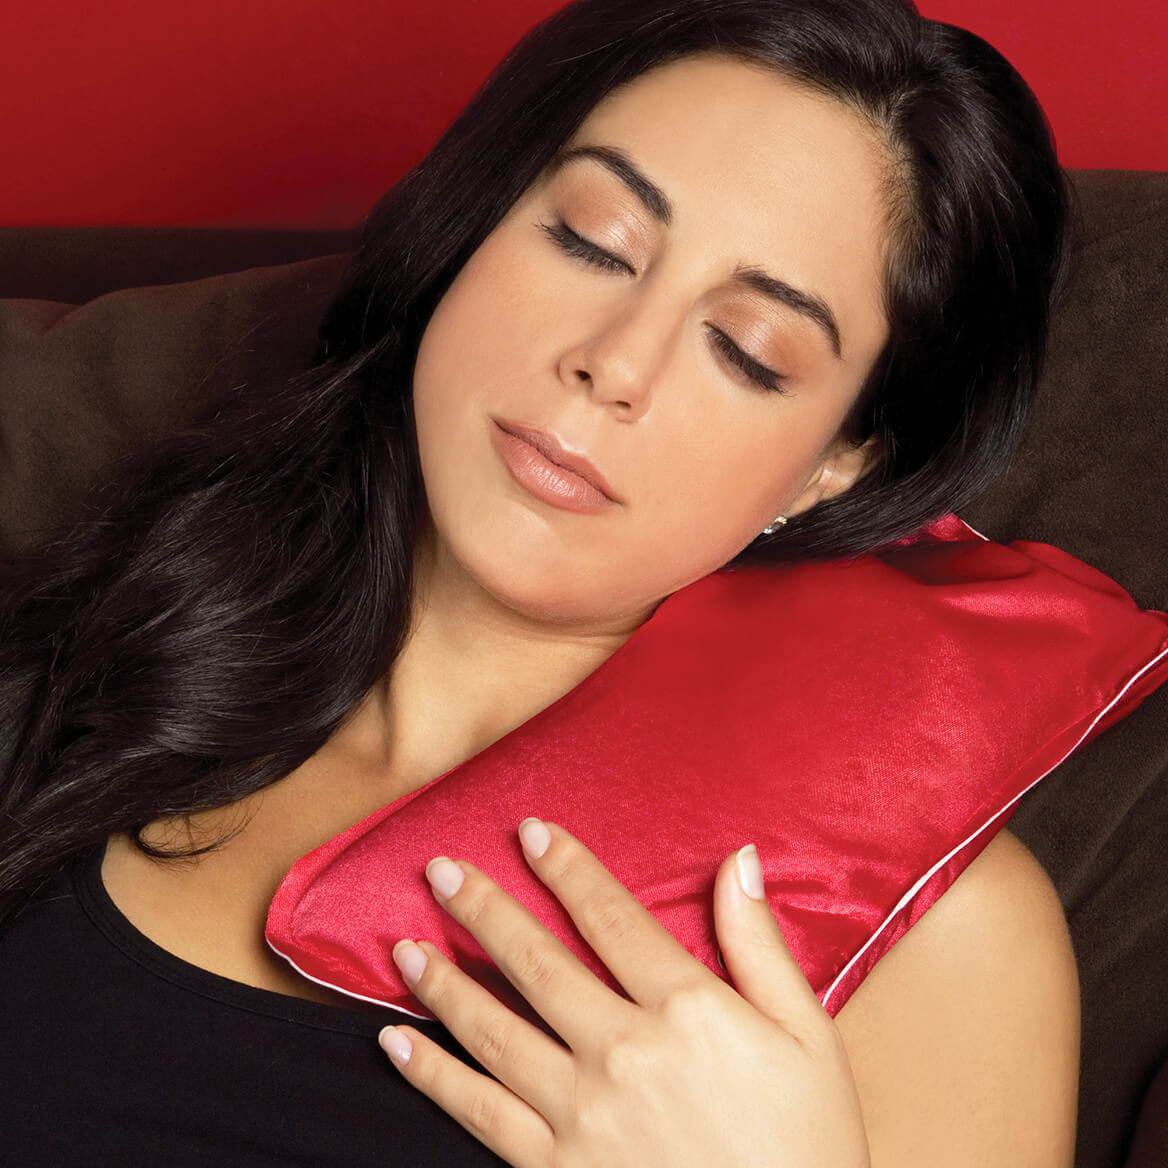 Rechargeable Electric Hot Water Bottle-346591